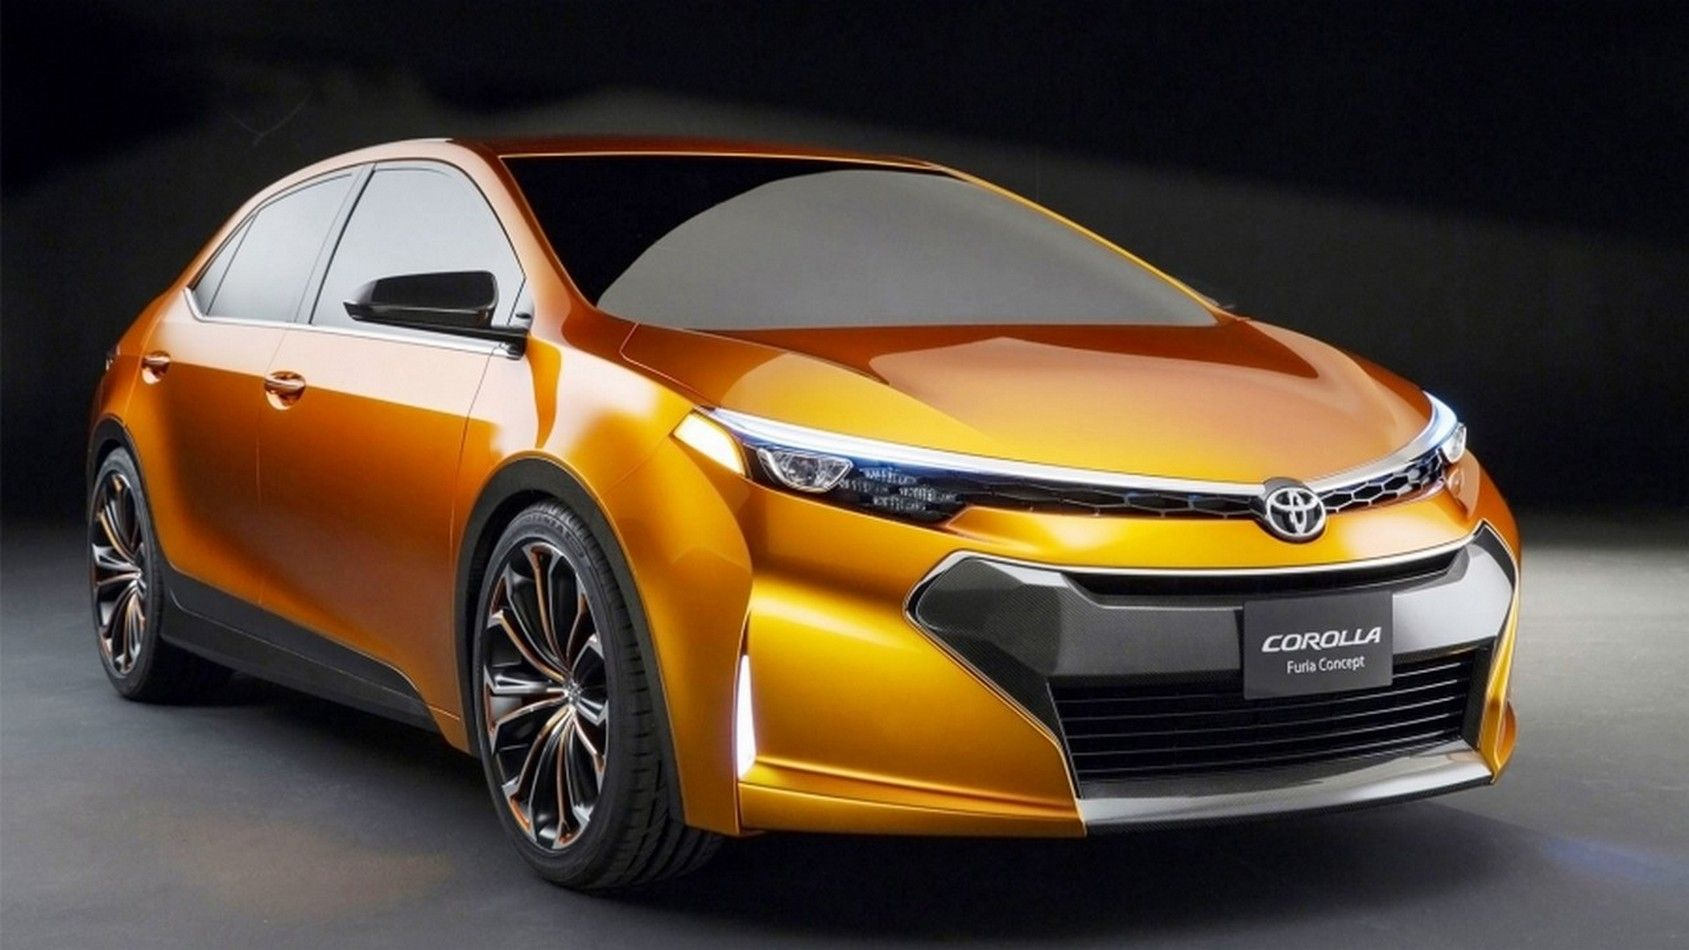 New 2014 toyota corolla pictures have been leaked which reveal all the major exterior changes being done to the new corolla